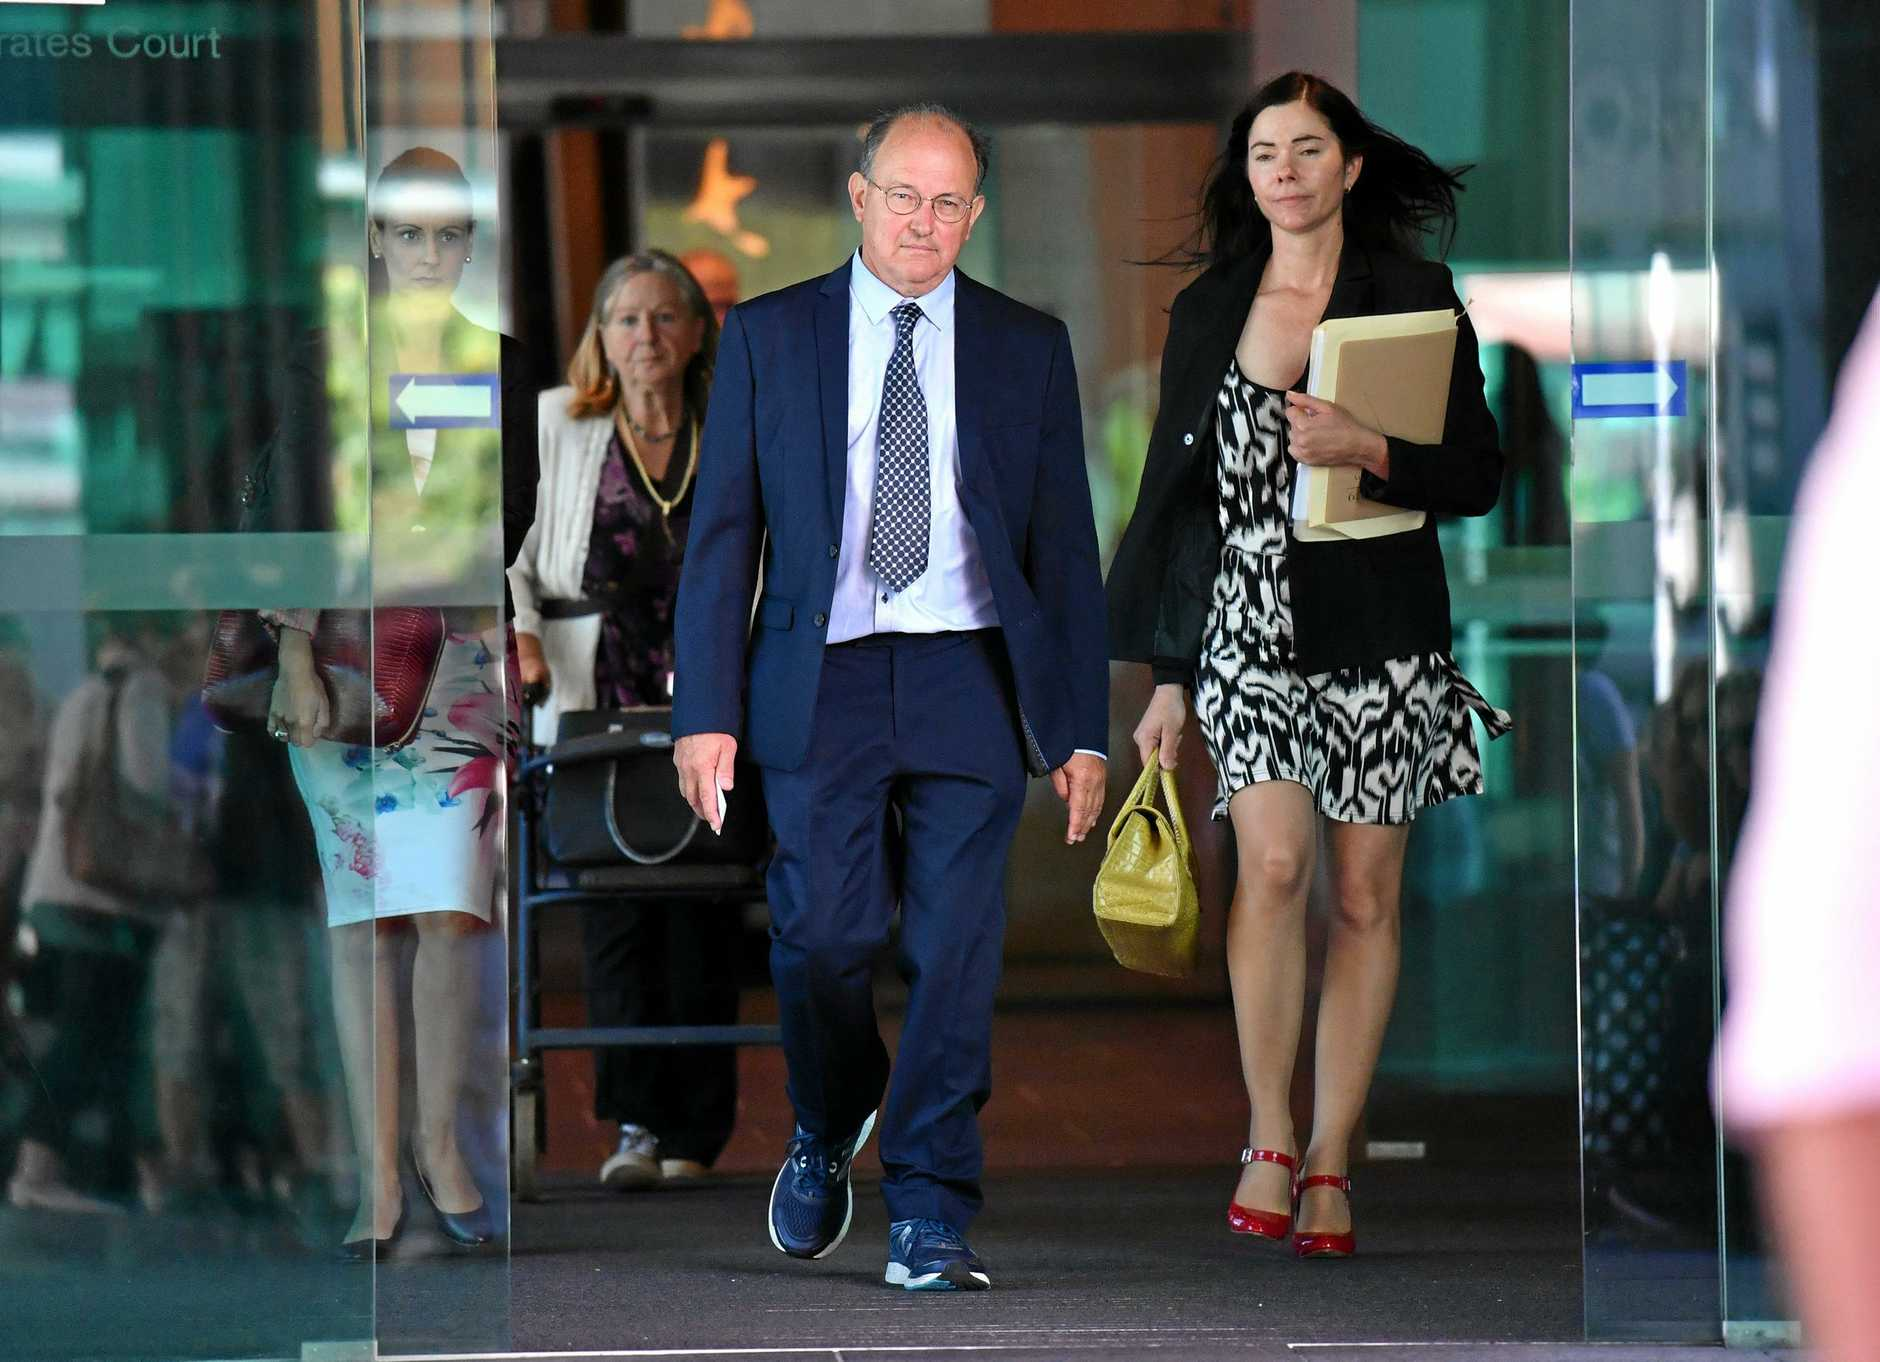 Dr William Russell Massingham Pridgeon (centre)  leaving the Brisbane Magistrates Court in Brisbane, Friday, April 5. Dr Pridgeon is is facing charges for his alleged role in an abduction ring network that helped mothers kidnap their children.